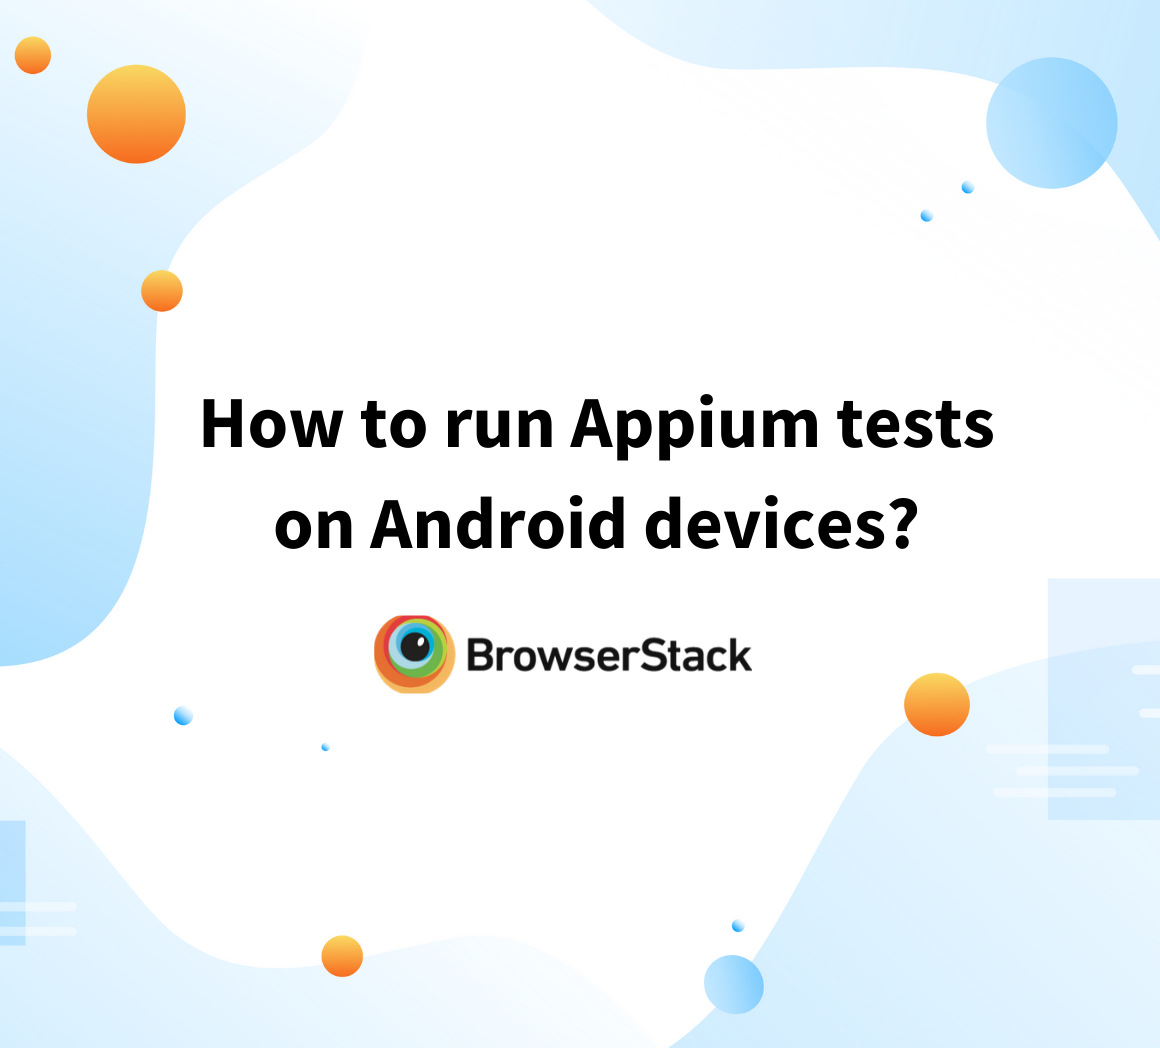 Tutorial on running Appium tests on Android devices